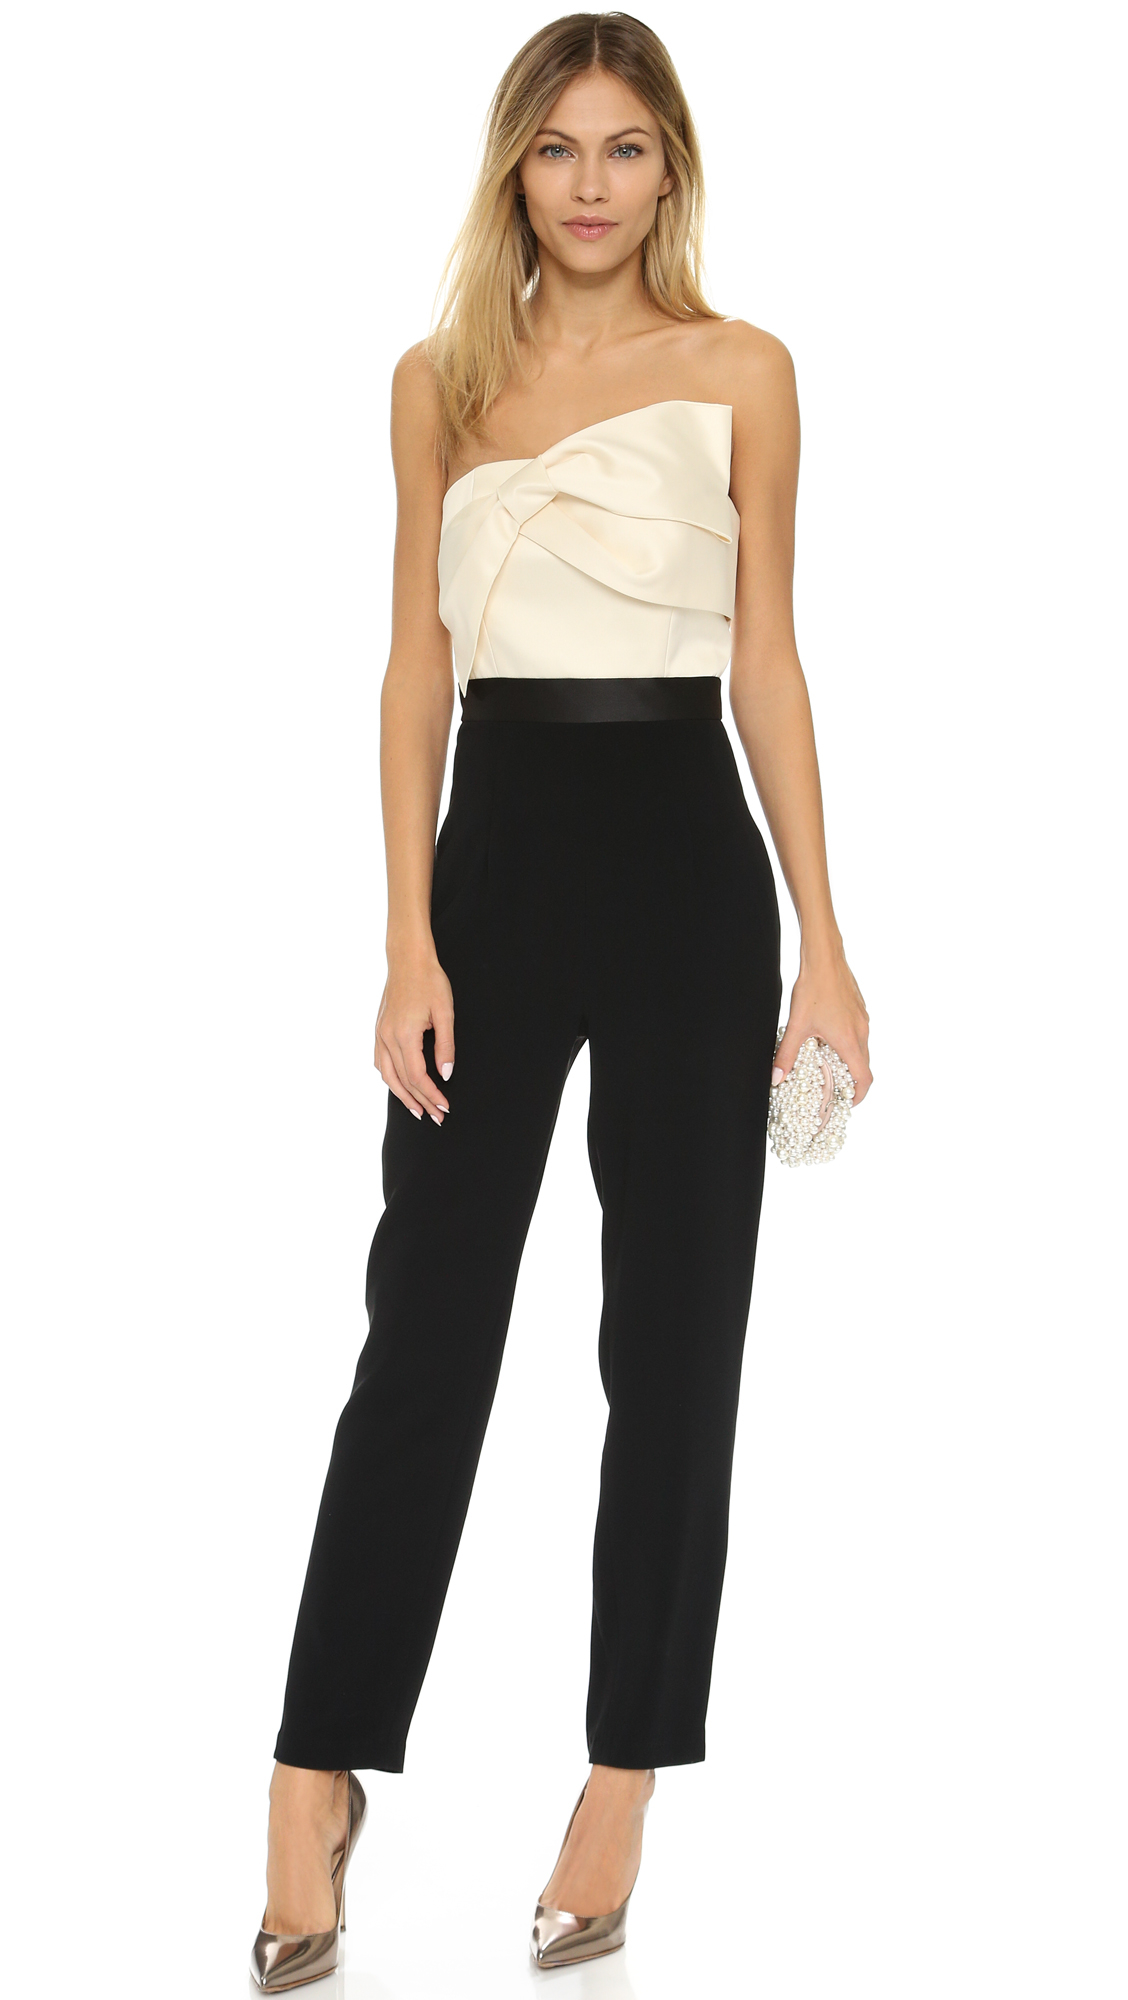 a7429f4f9a8c Lyst - Cynthia Rowley Strapless Jumpsuit With Draped Bow Top in Black